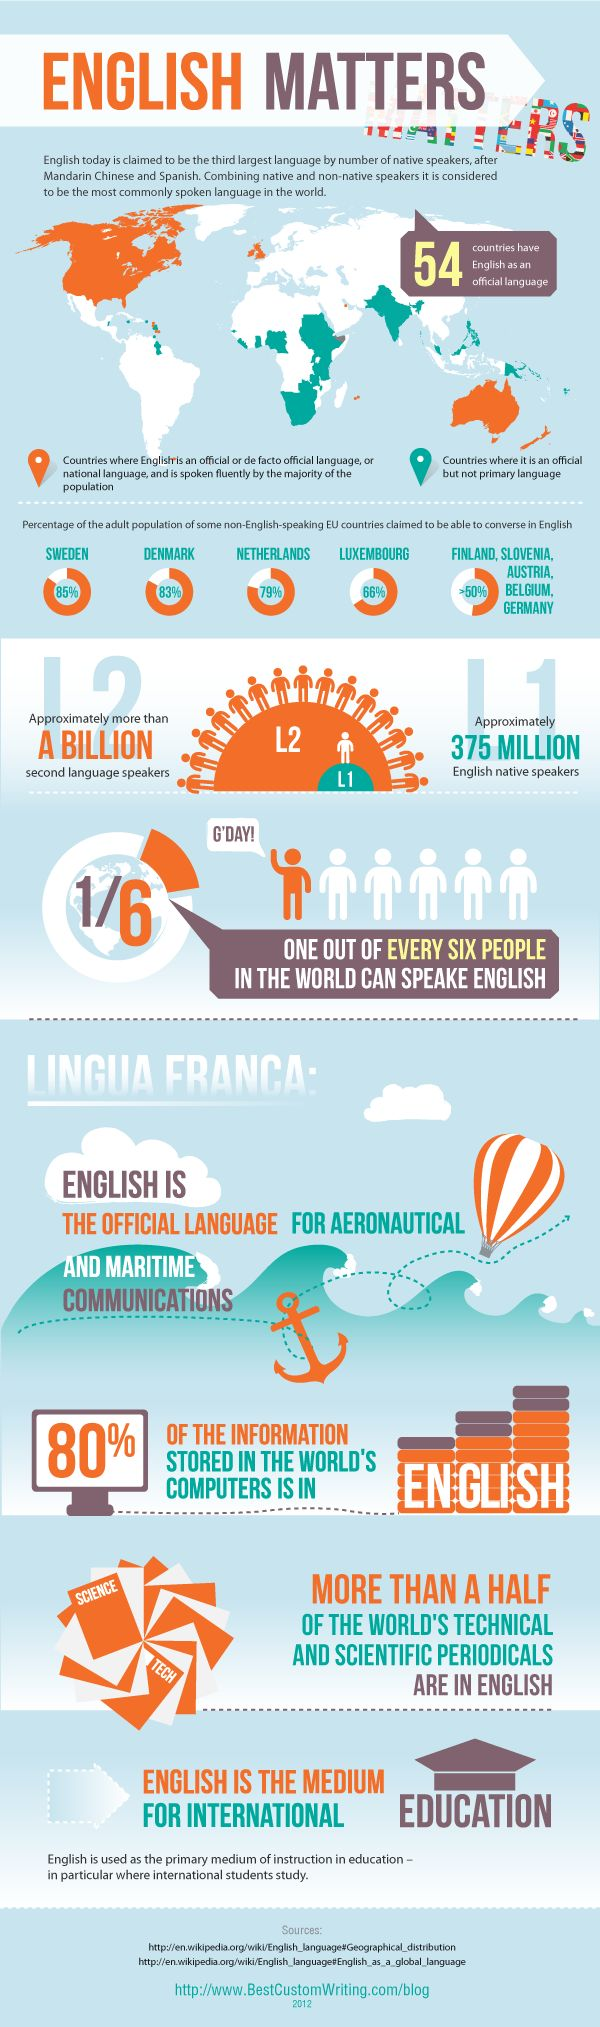 8 Best English As A Global Business Lingua Franca Images On